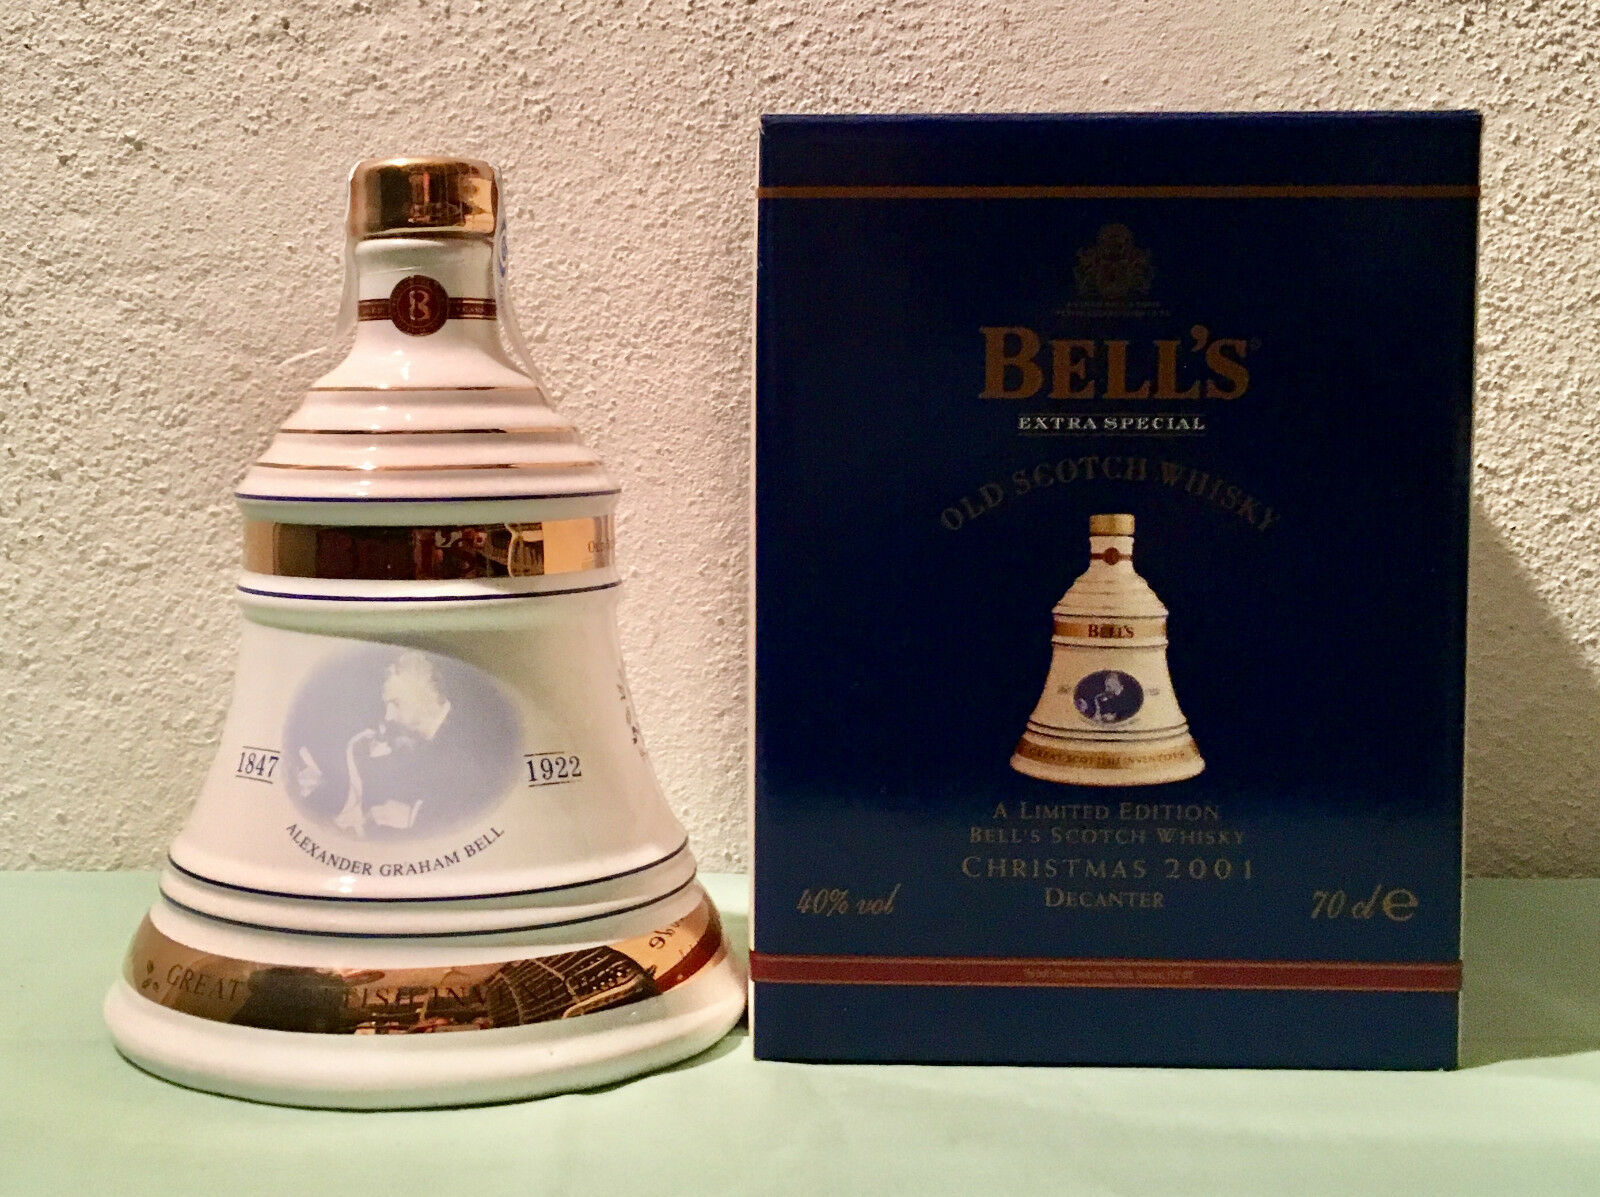 Bells Old Scotch Whisky Extra Special Limited Edition Christmas 2001